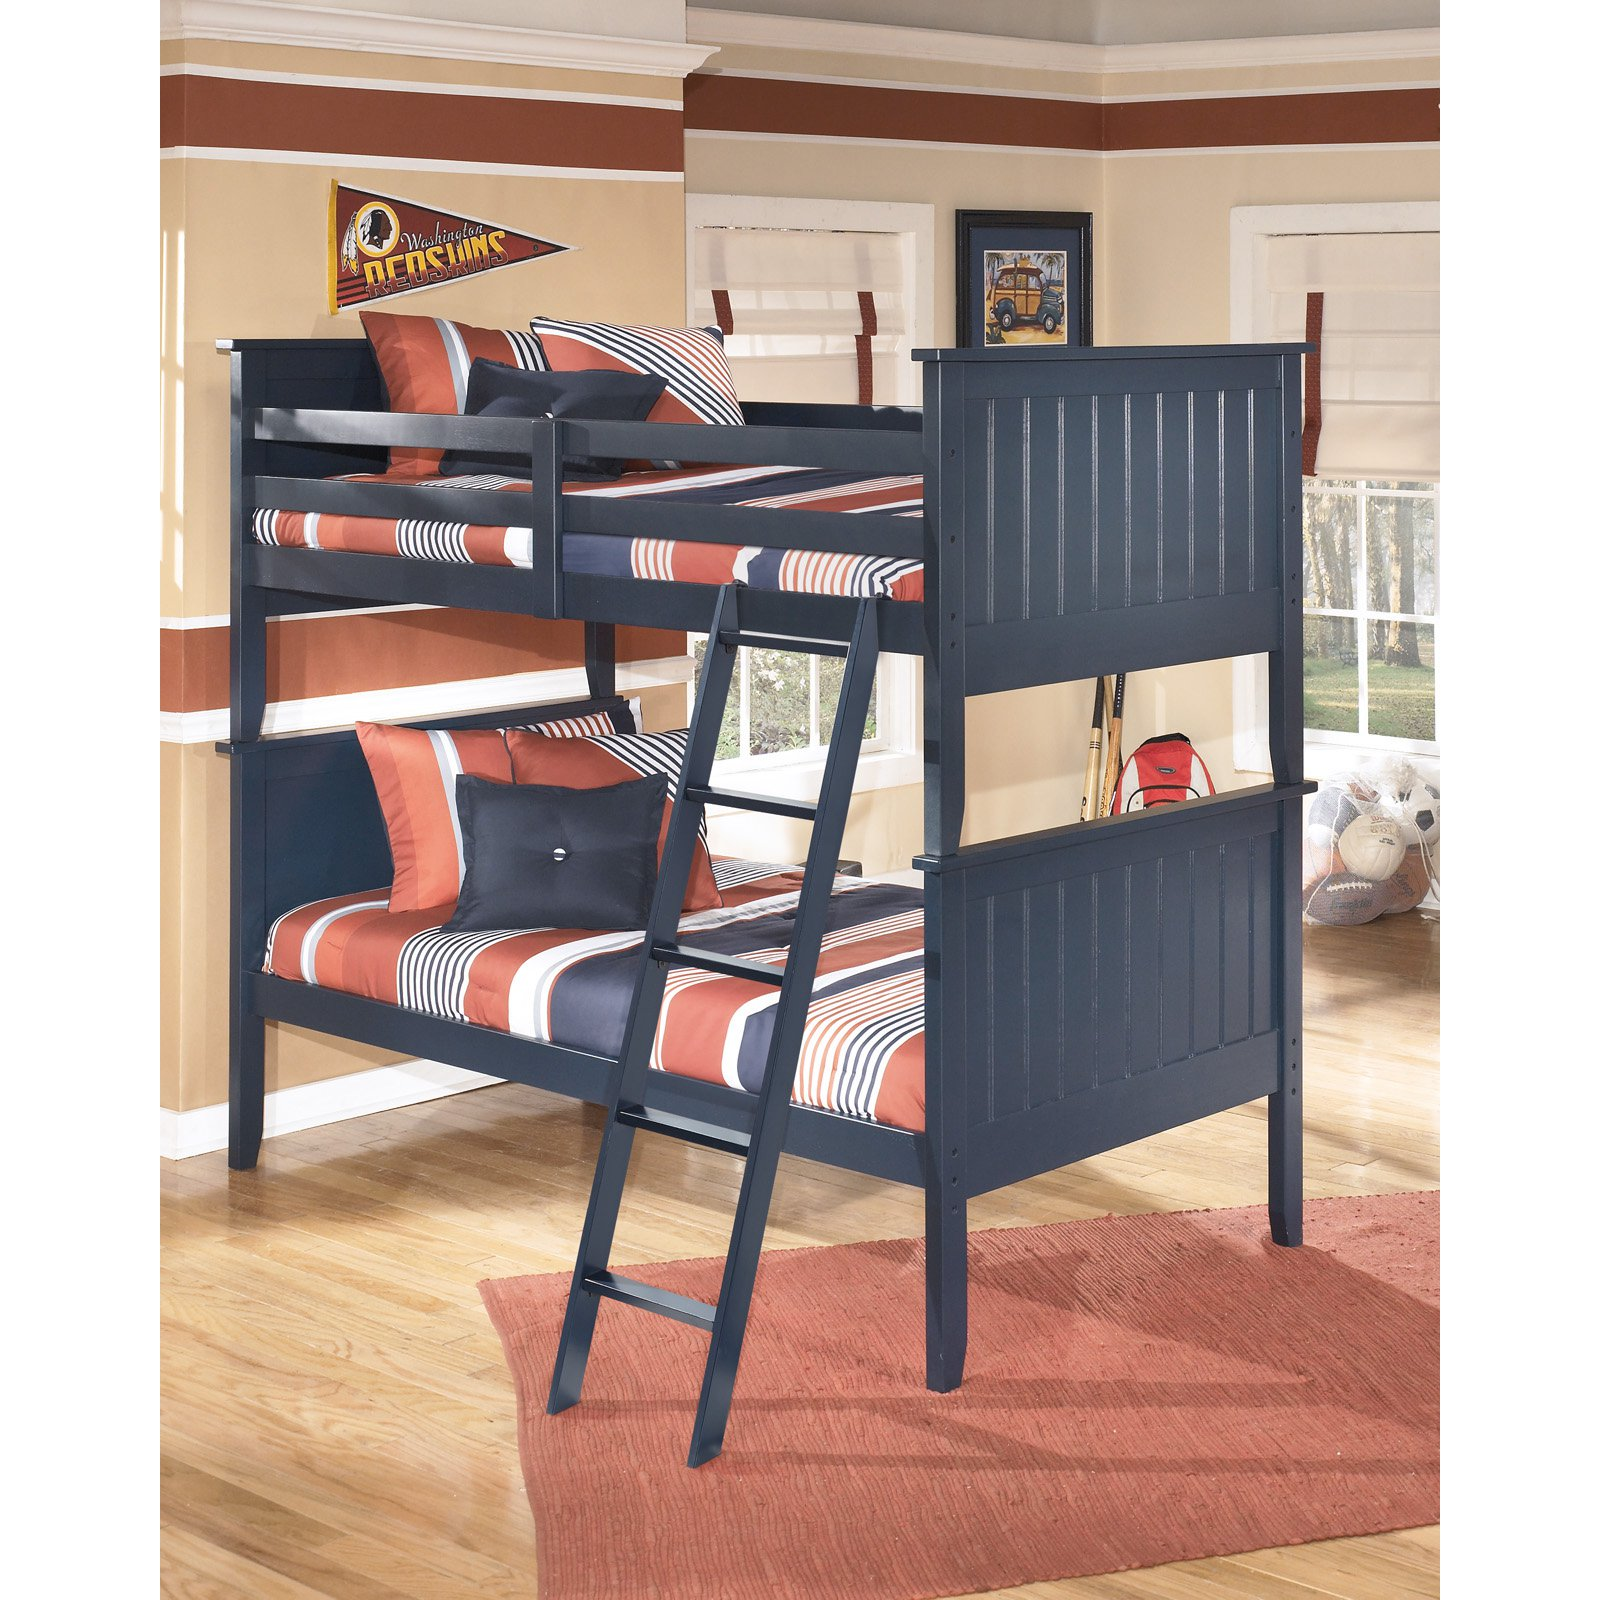 Signature Design by Ashley Leo Twin over Twin Bunk Bed - Blue